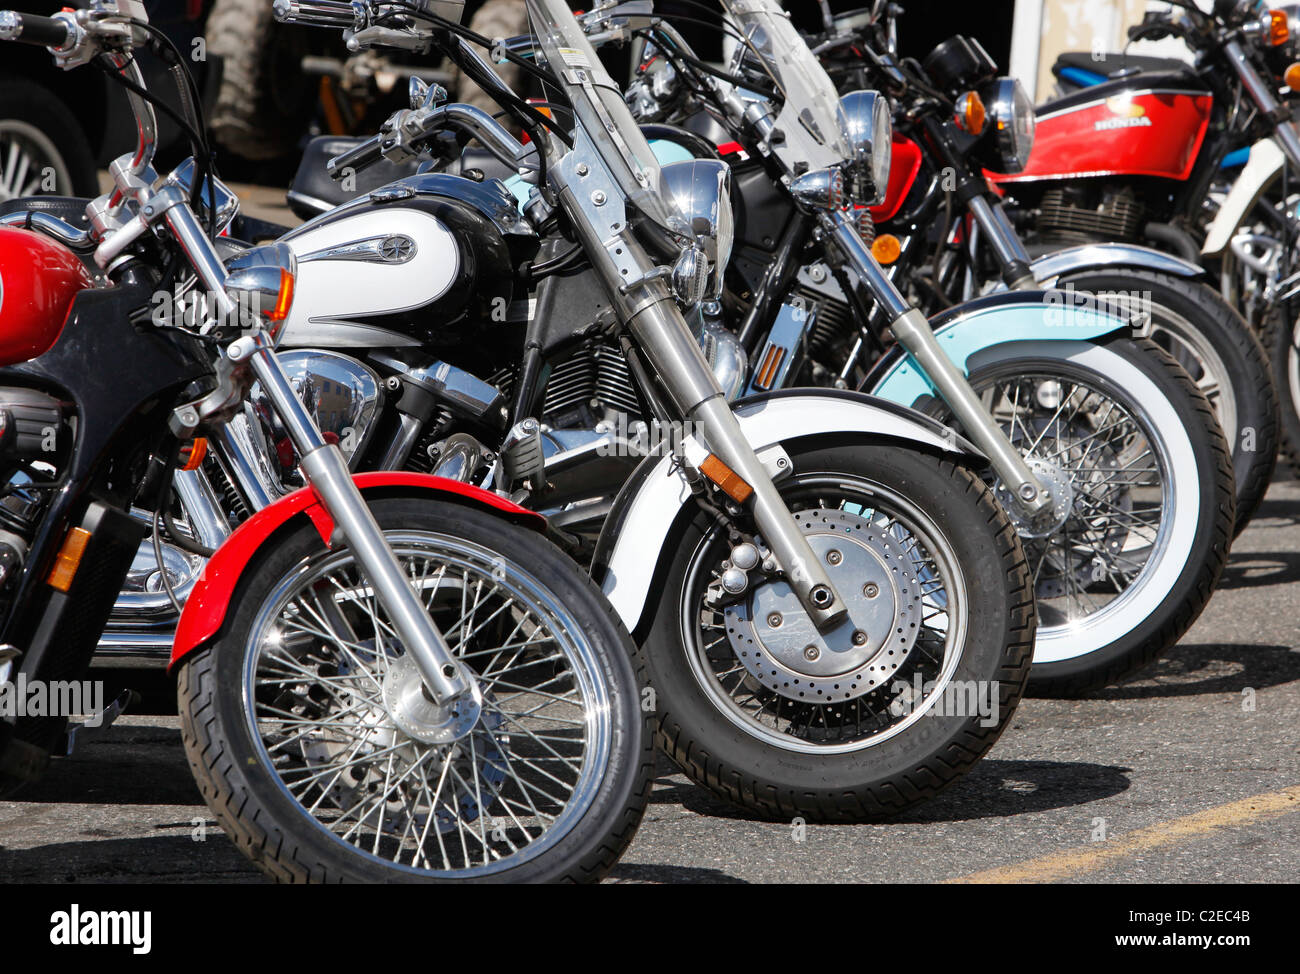 A row of parked motorcycles - Stock Image